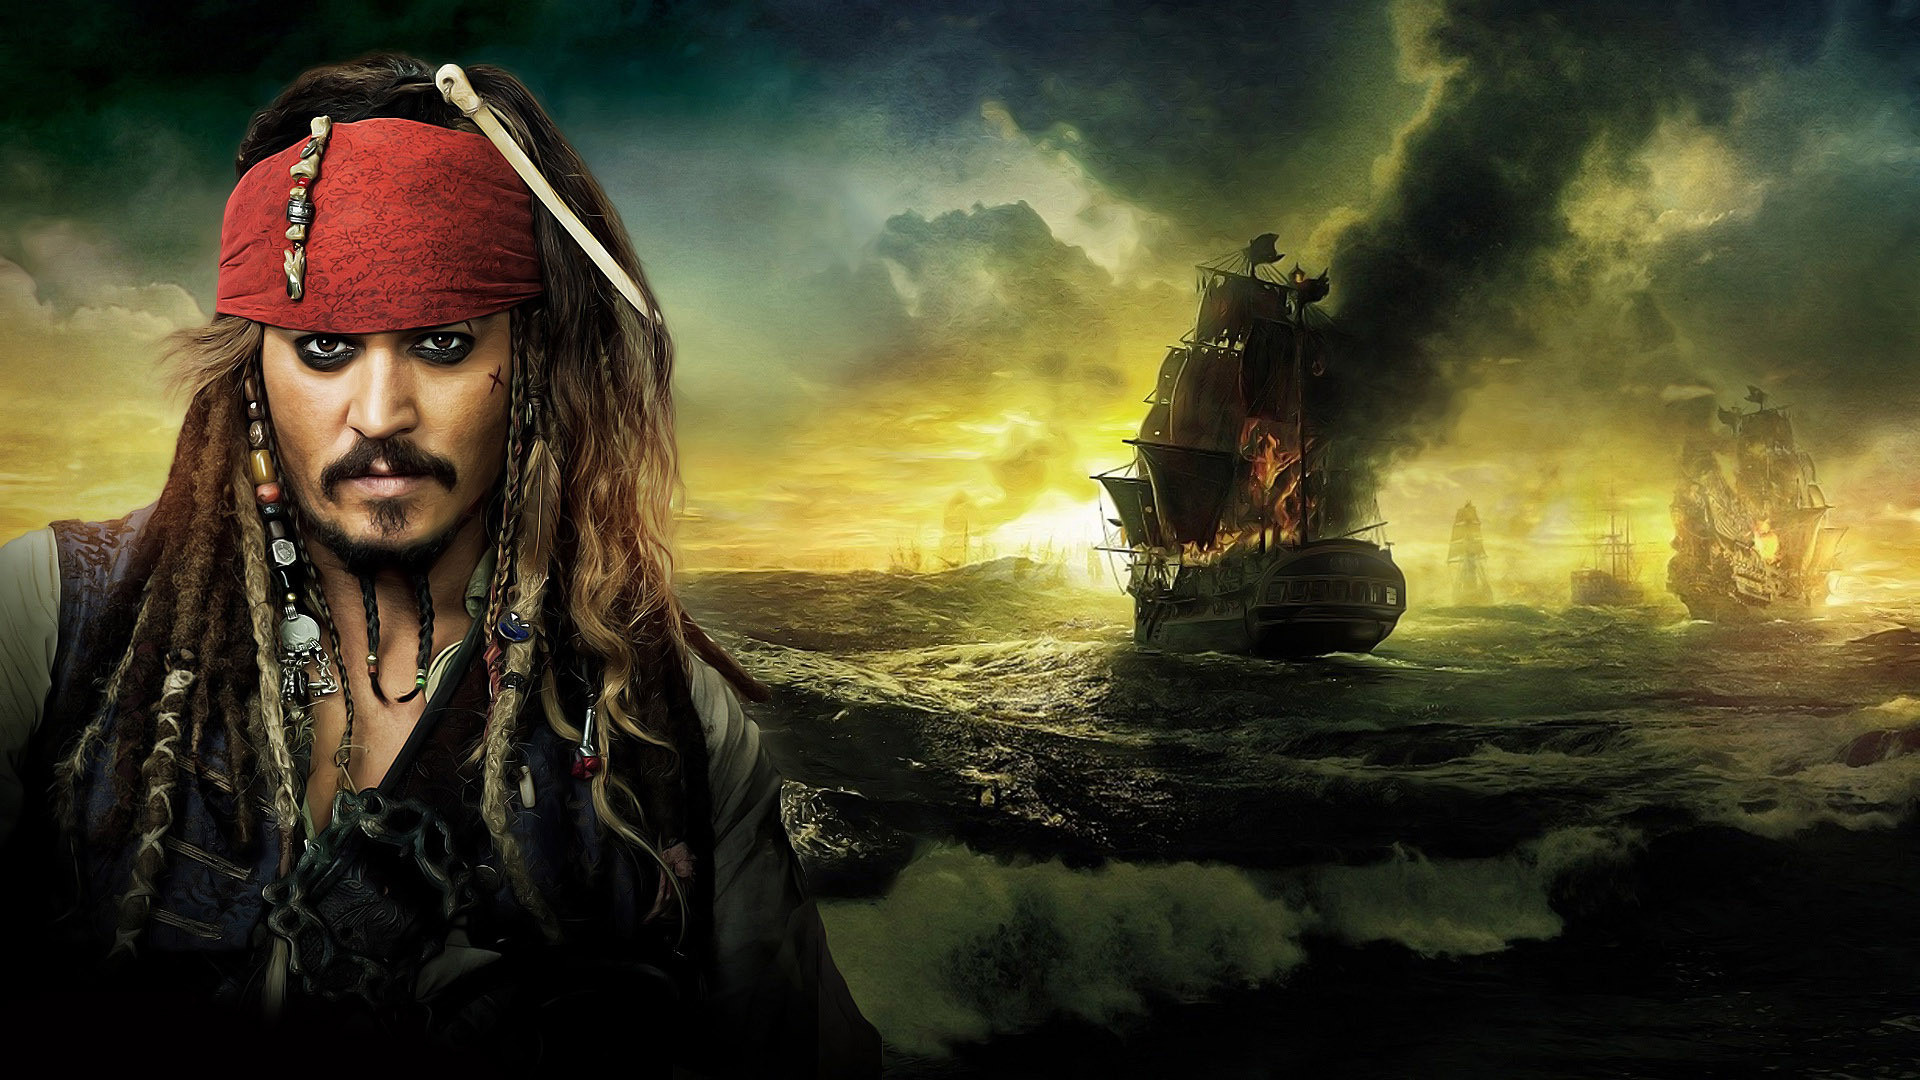 Pirates of the caribbean 4 wallpaper wallpapertag - Pirates of the caribbean images hd ...